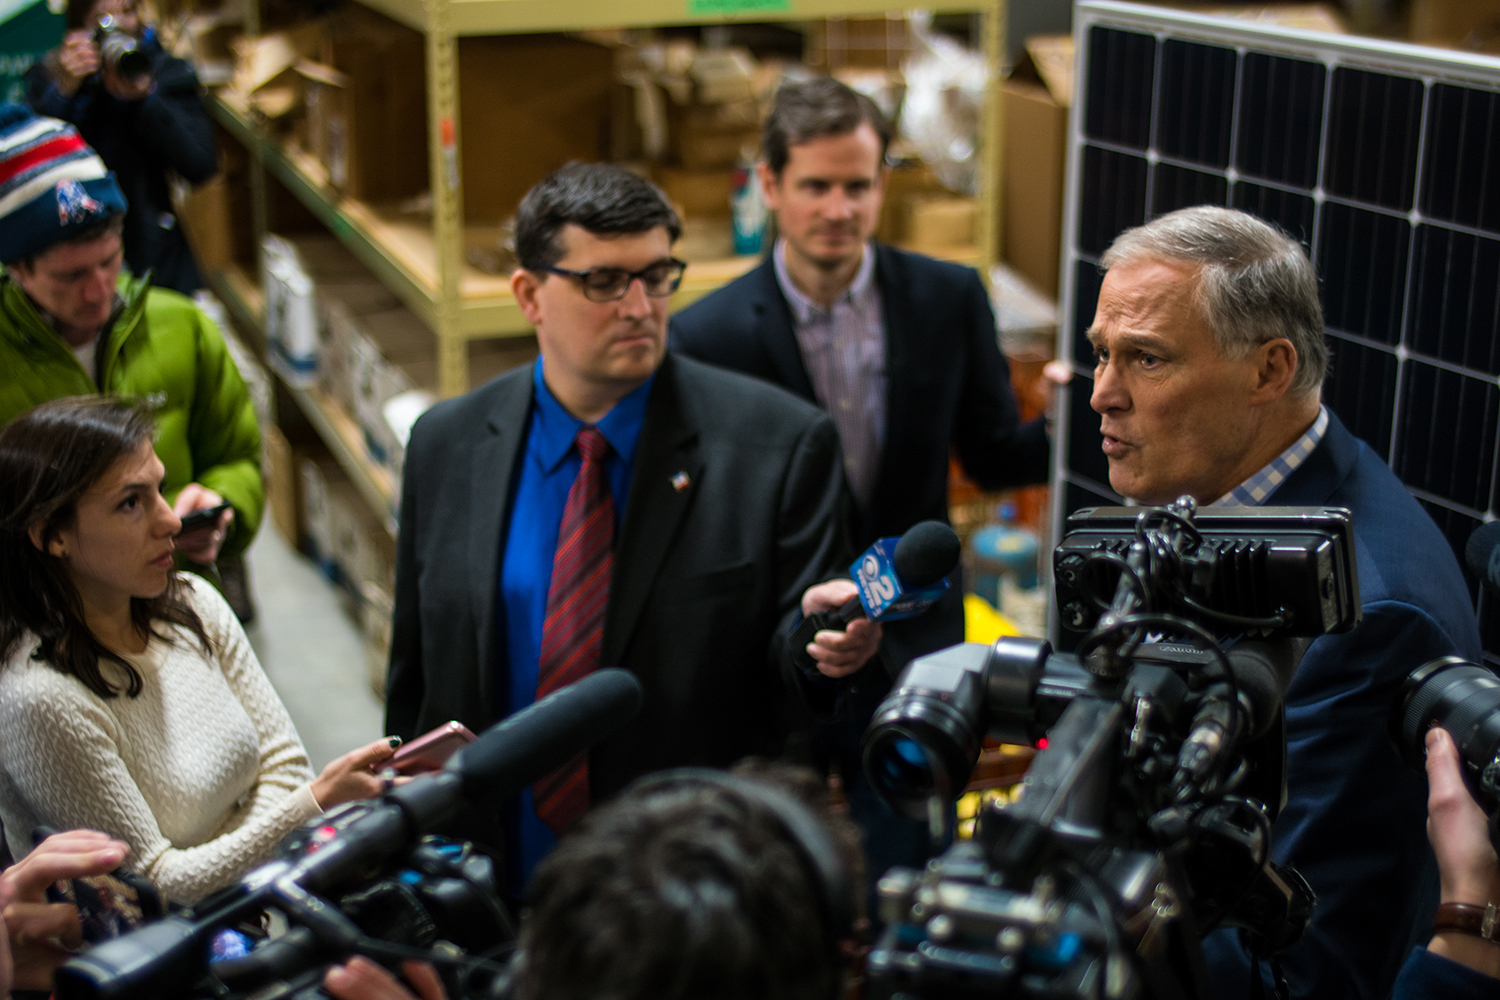 Washington Gov. Jay Inslee stopped by Paulson Electric Co. in Cedar Rapids on Tuesday, March 5, 2019. Jay Inslee talked with CEO Tyler Olson about climate change and how solar panels help combat its effects.